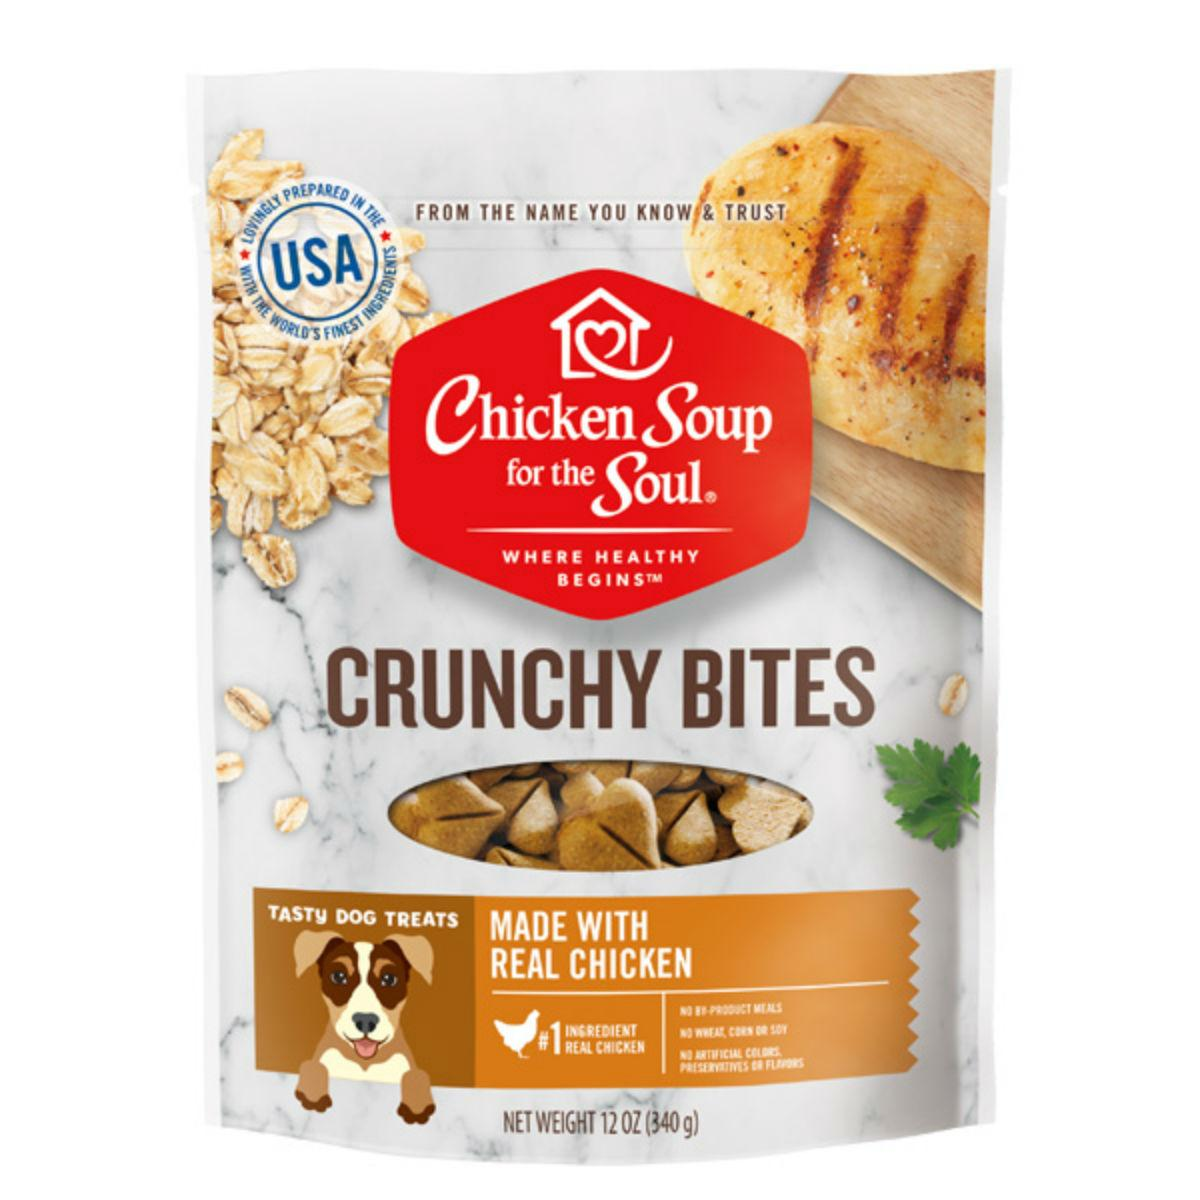 Chicken Soup for The Soul Crunchy Bites Dog Treats - Chicken